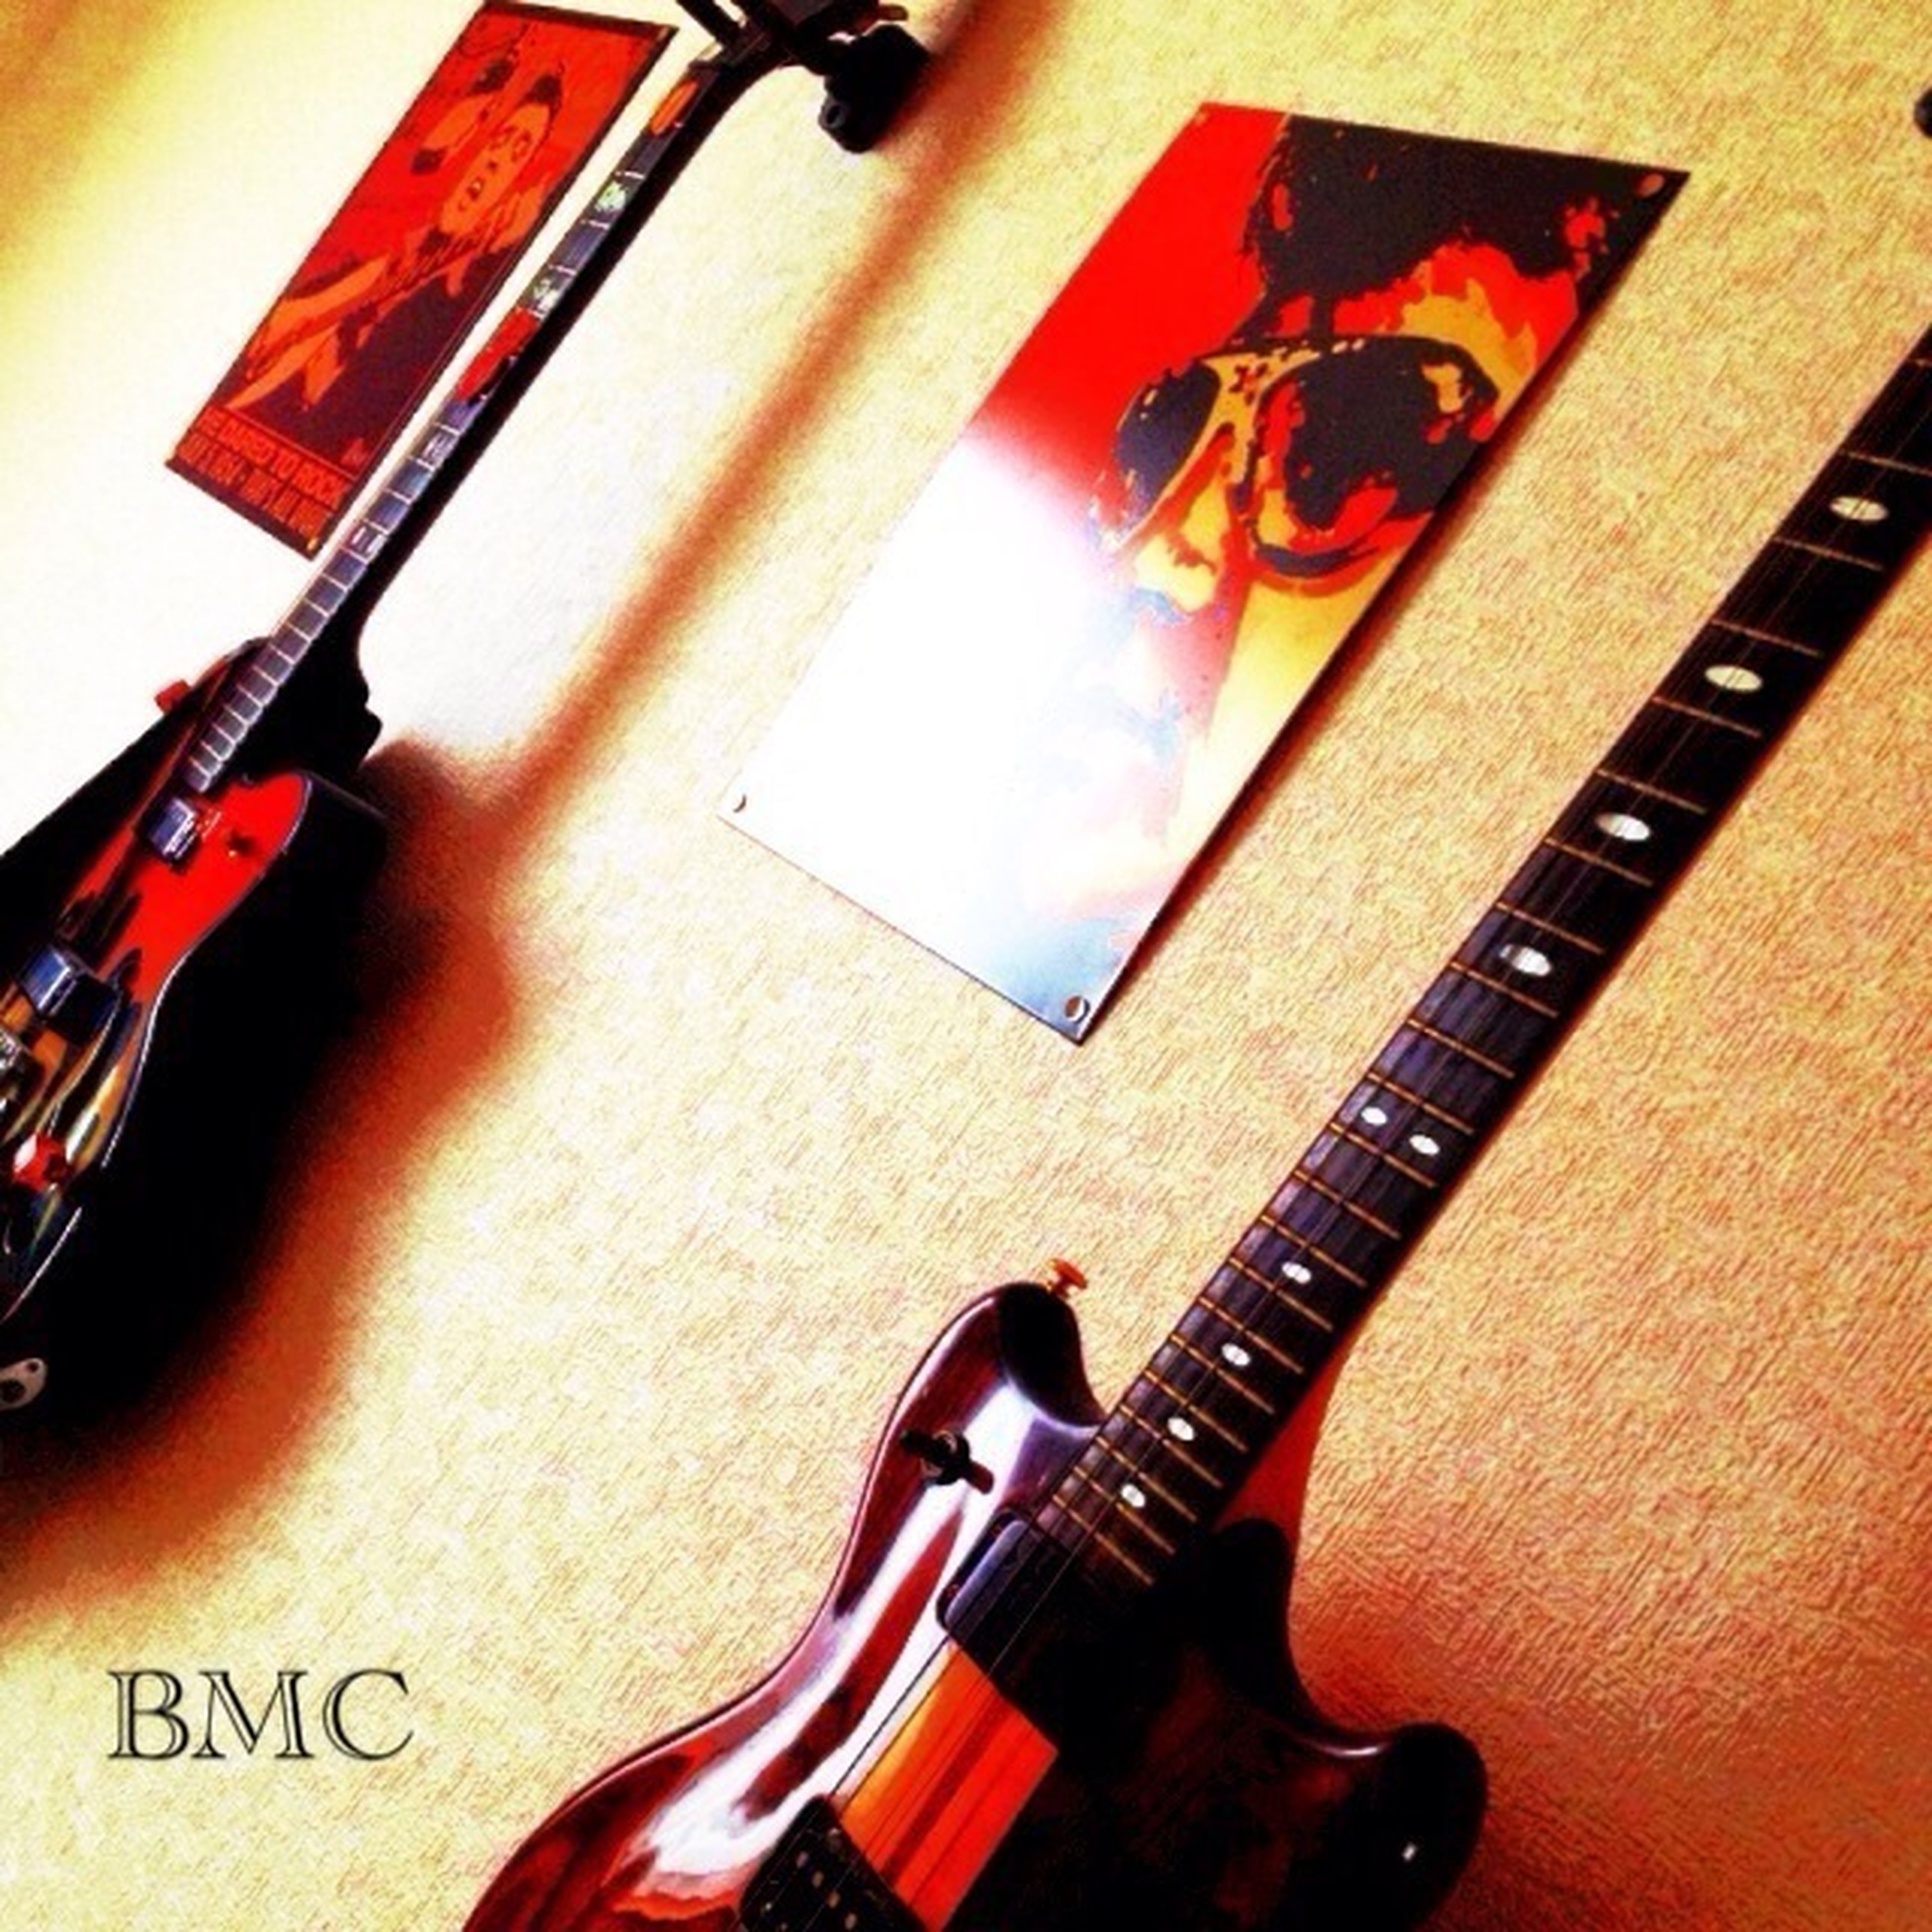 indoors, still life, table, high angle view, music, technology, arts culture and entertainment, musical instrument, close-up, communication, no people, home interior, musical equipment, wood - material, guitar, book, paper, wireless technology, education, connection